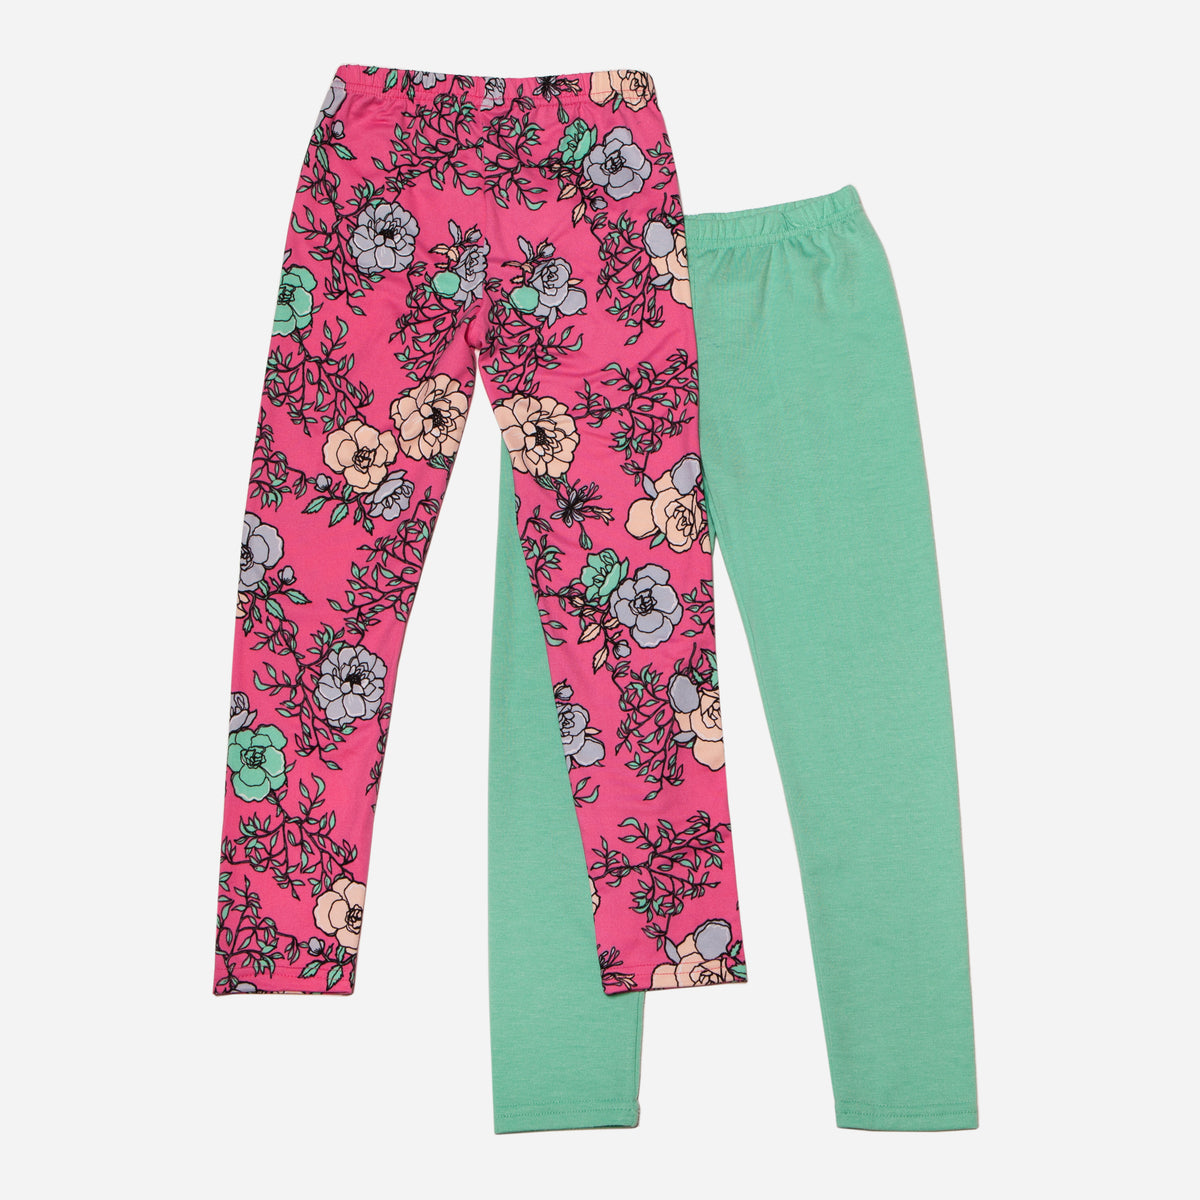 Floral and Solid Teal Legging Set of 2